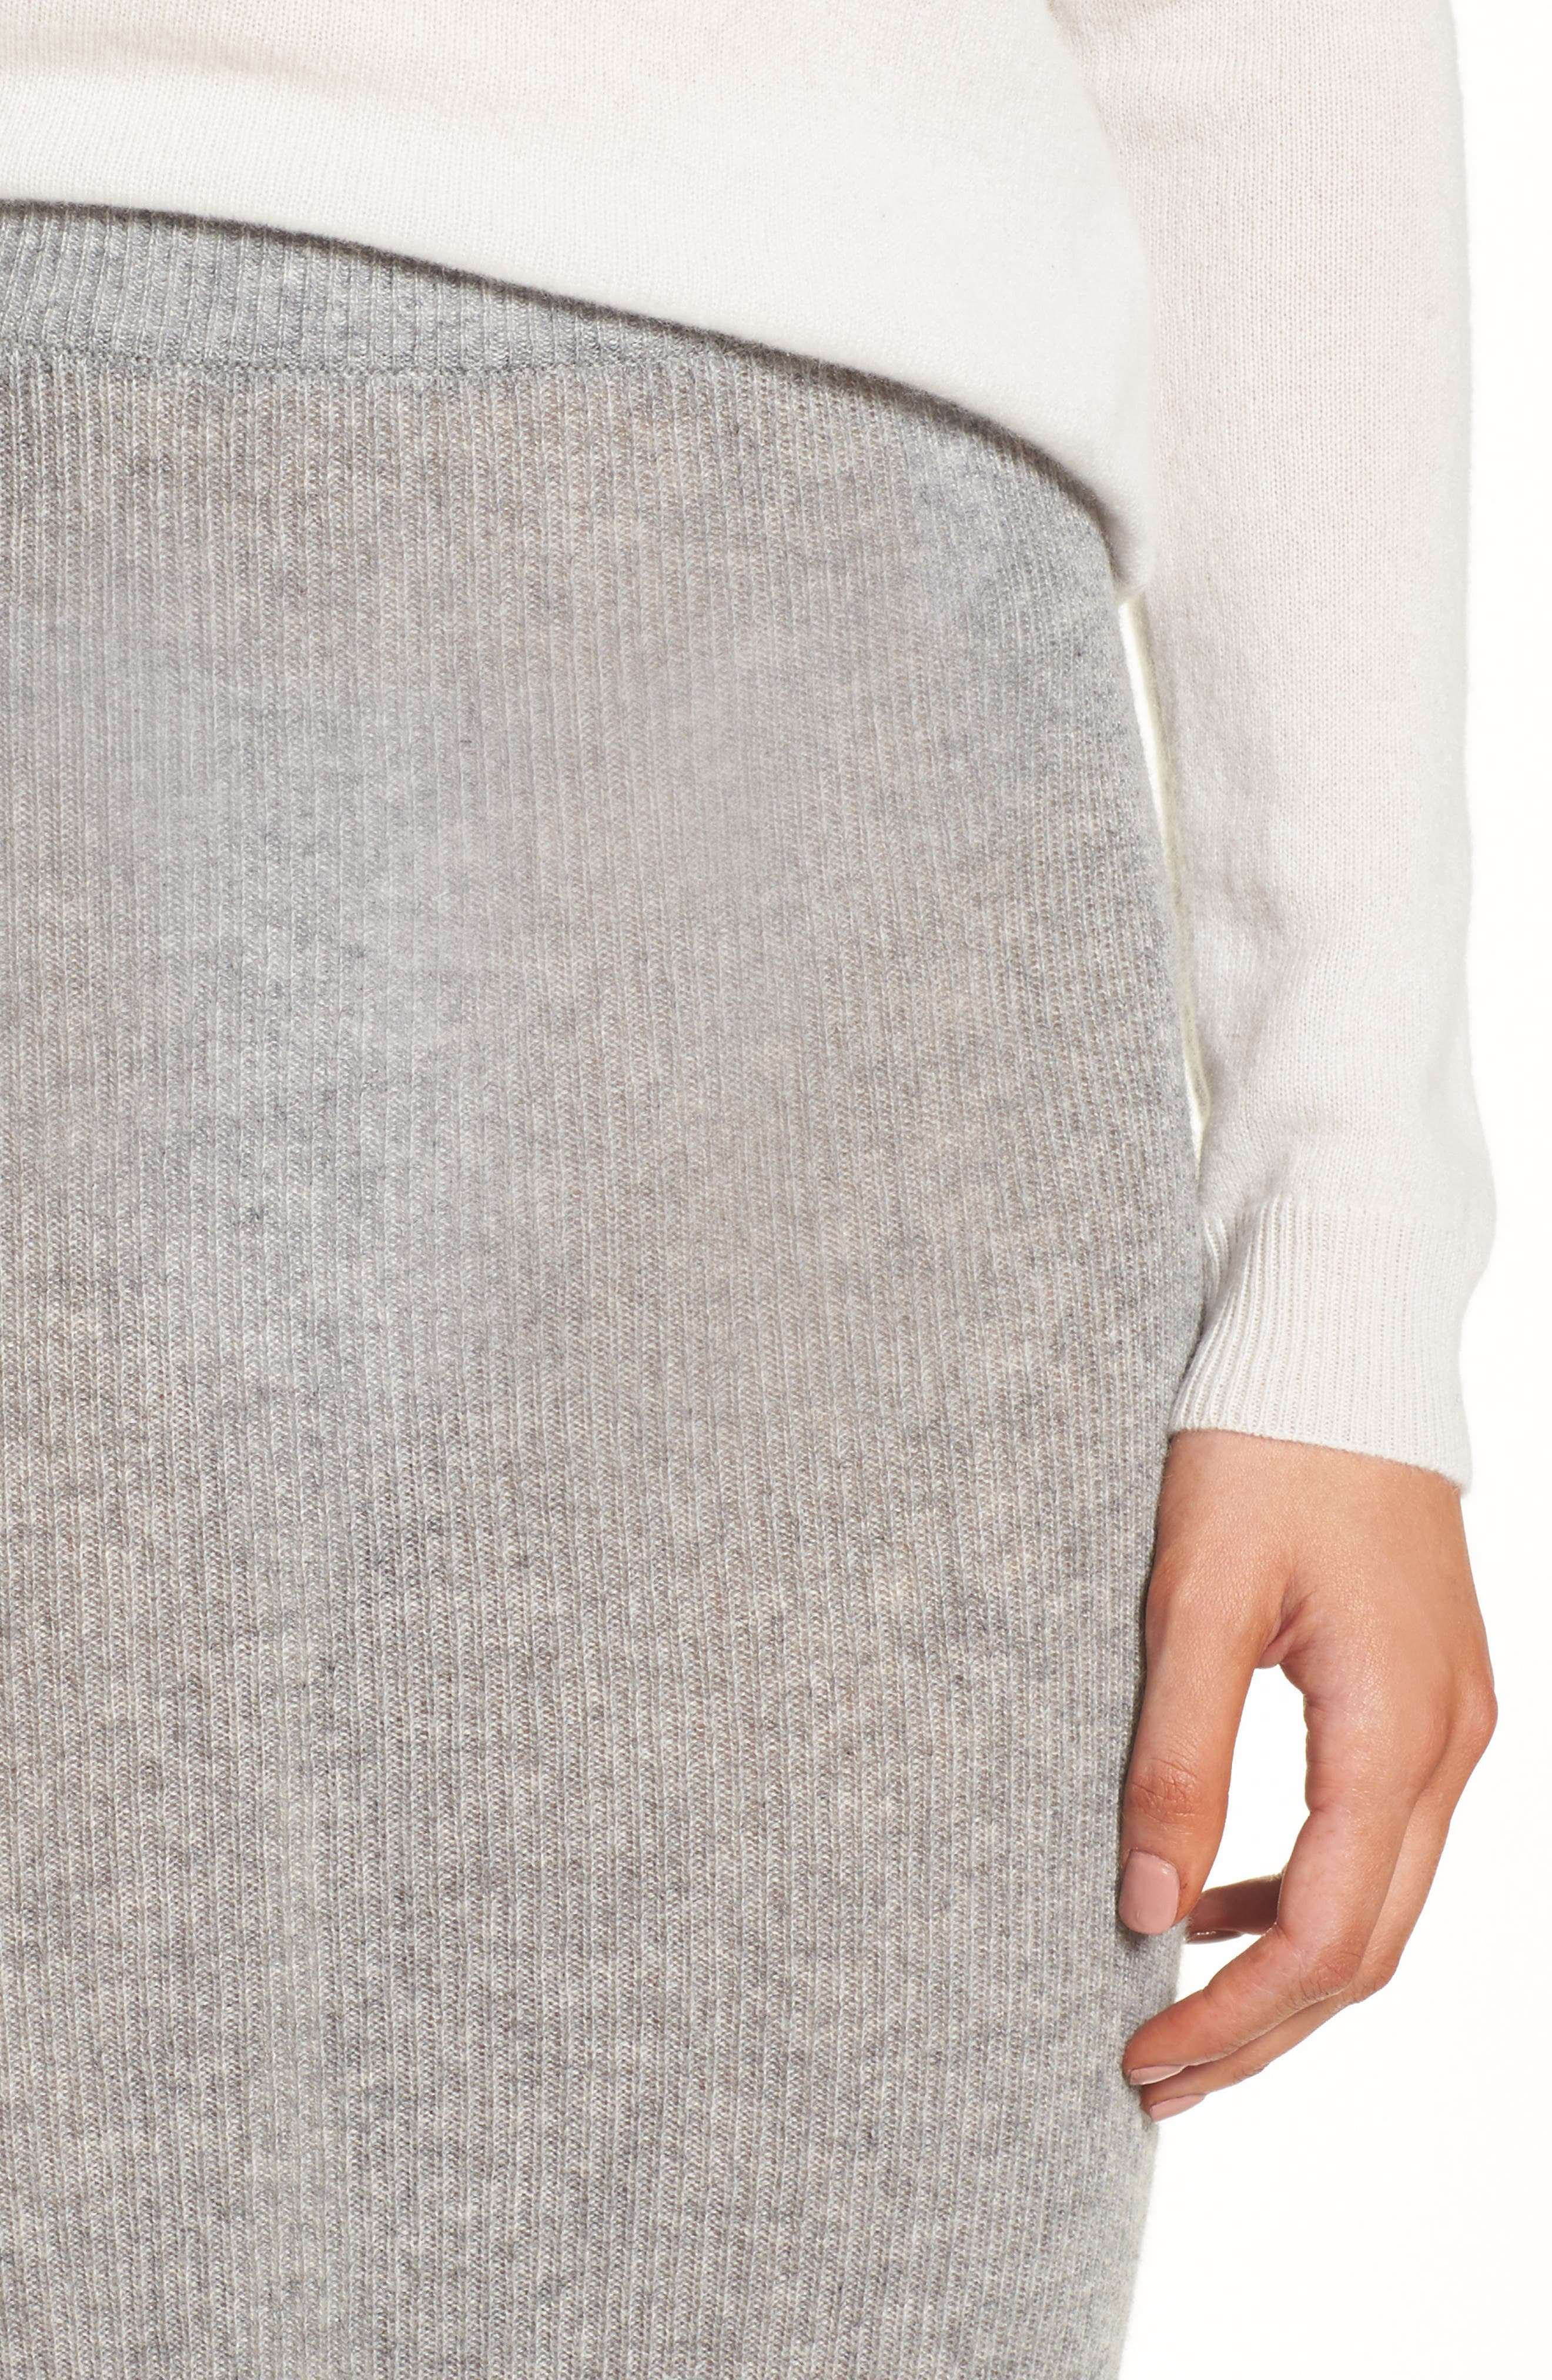 Cashmere Skirt,                             Alternate thumbnail 4, color,                             Heather Grey